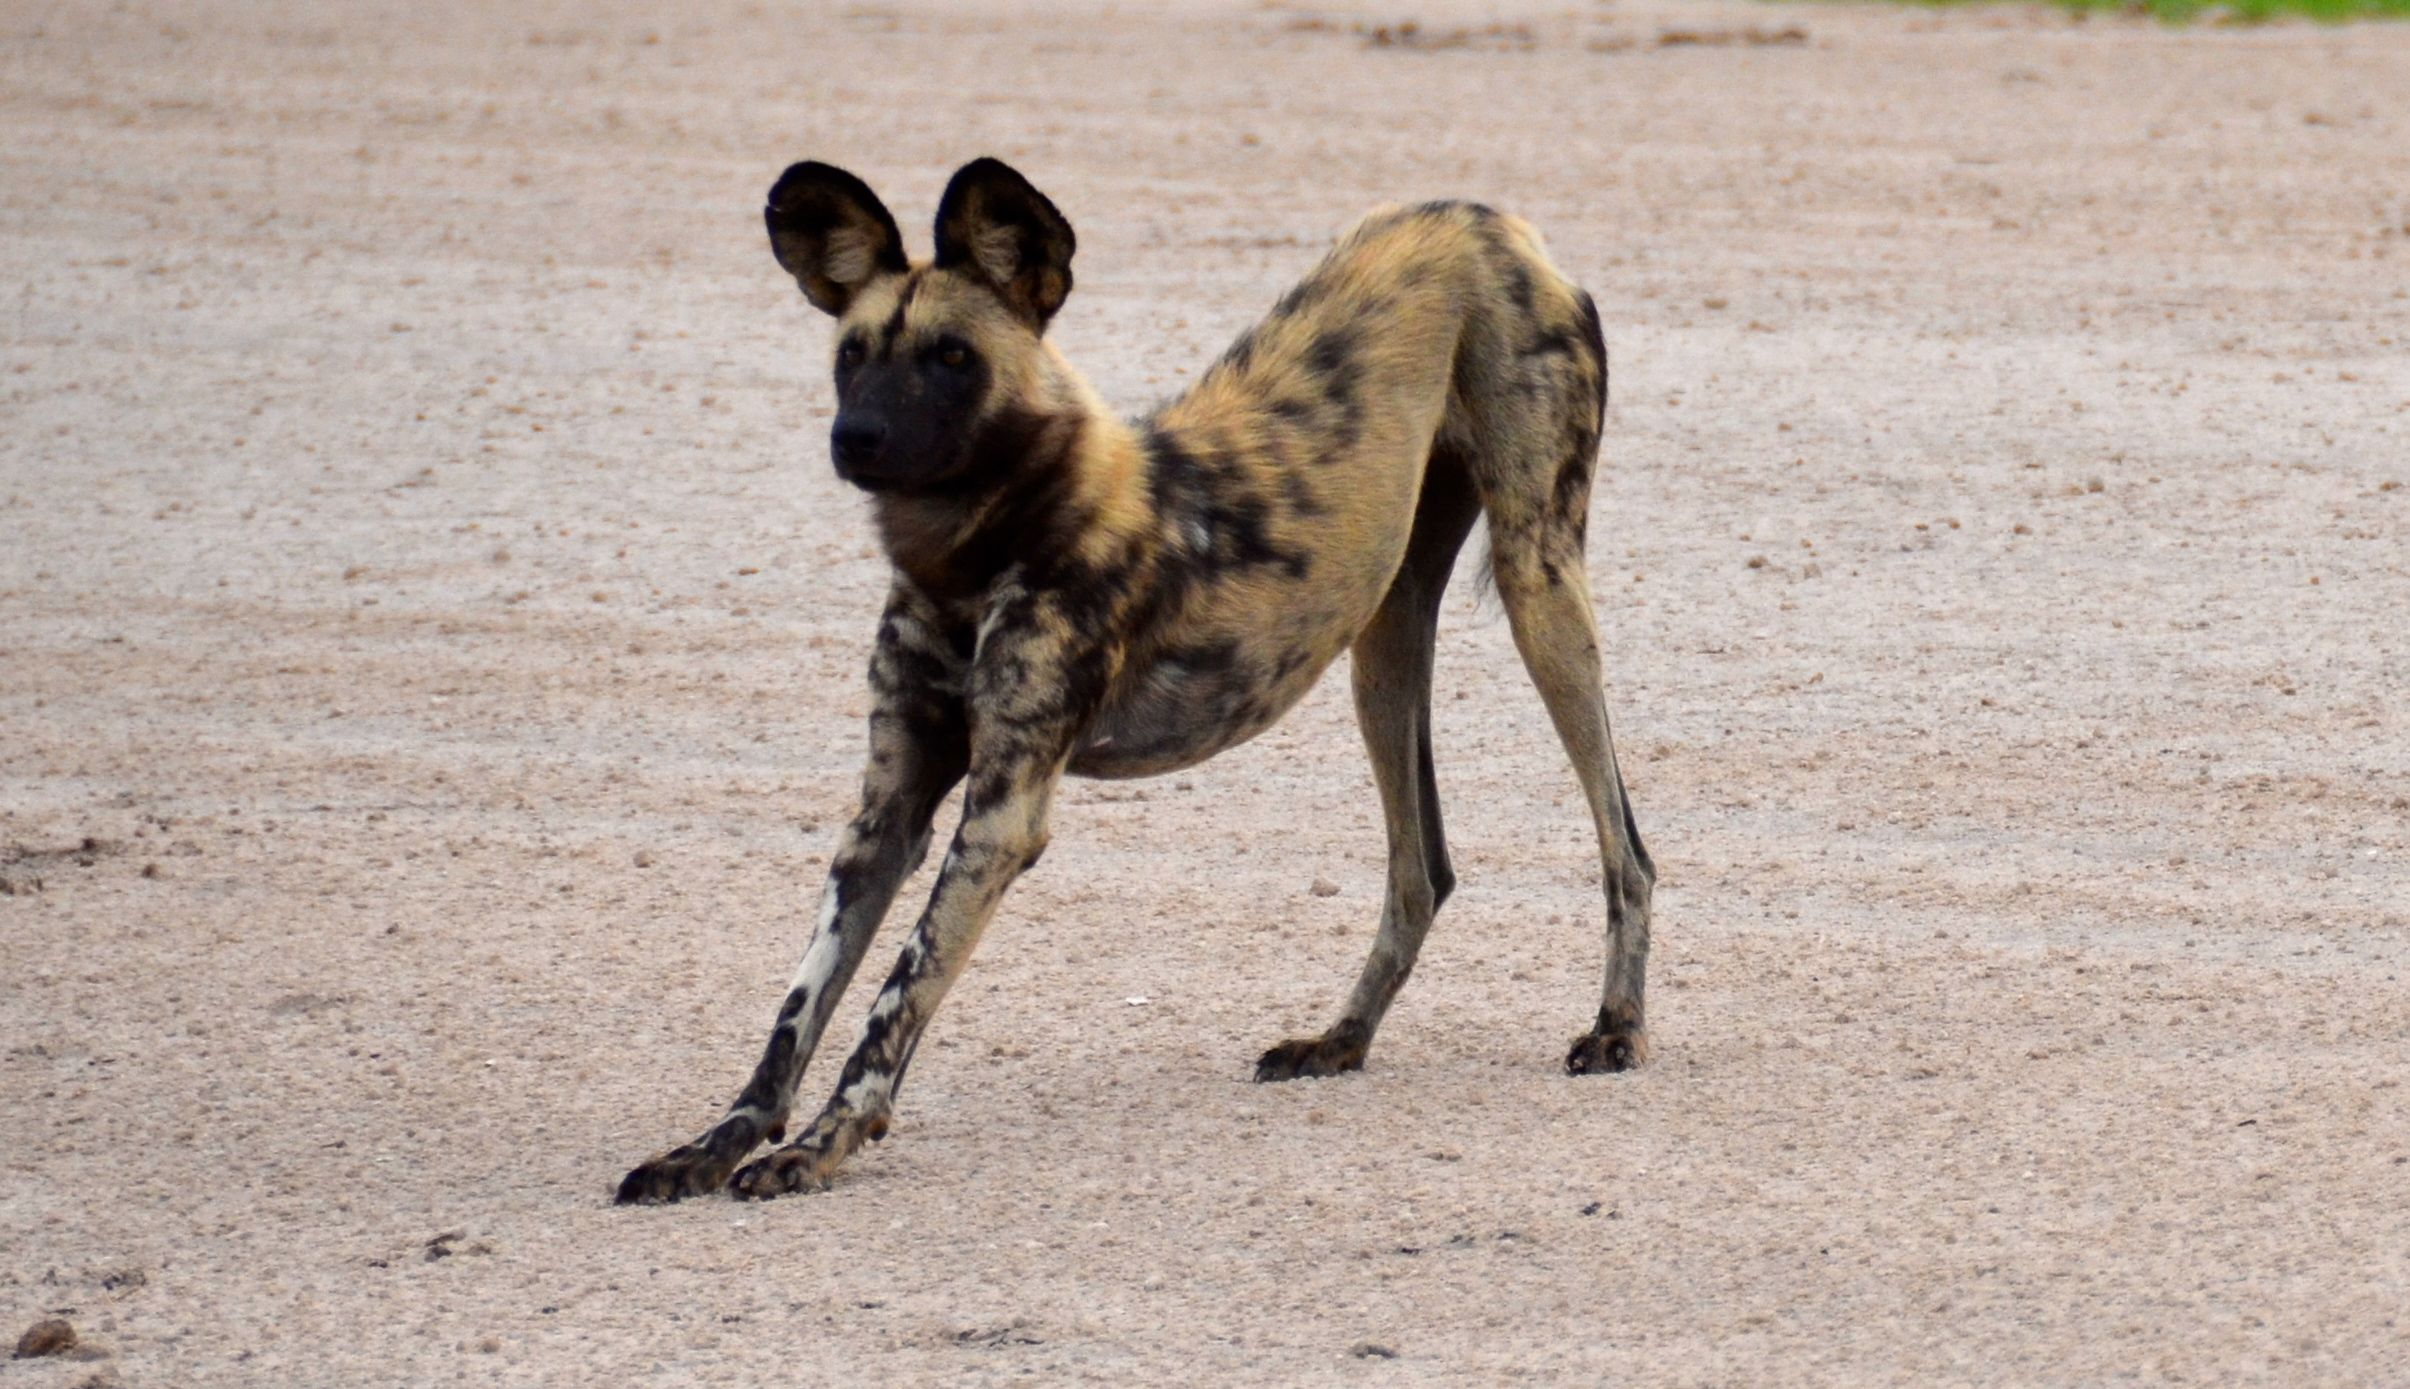 Cute little stretch! Submission and nonaggression are emphasized in #africa #wild #dog #packs  #safari